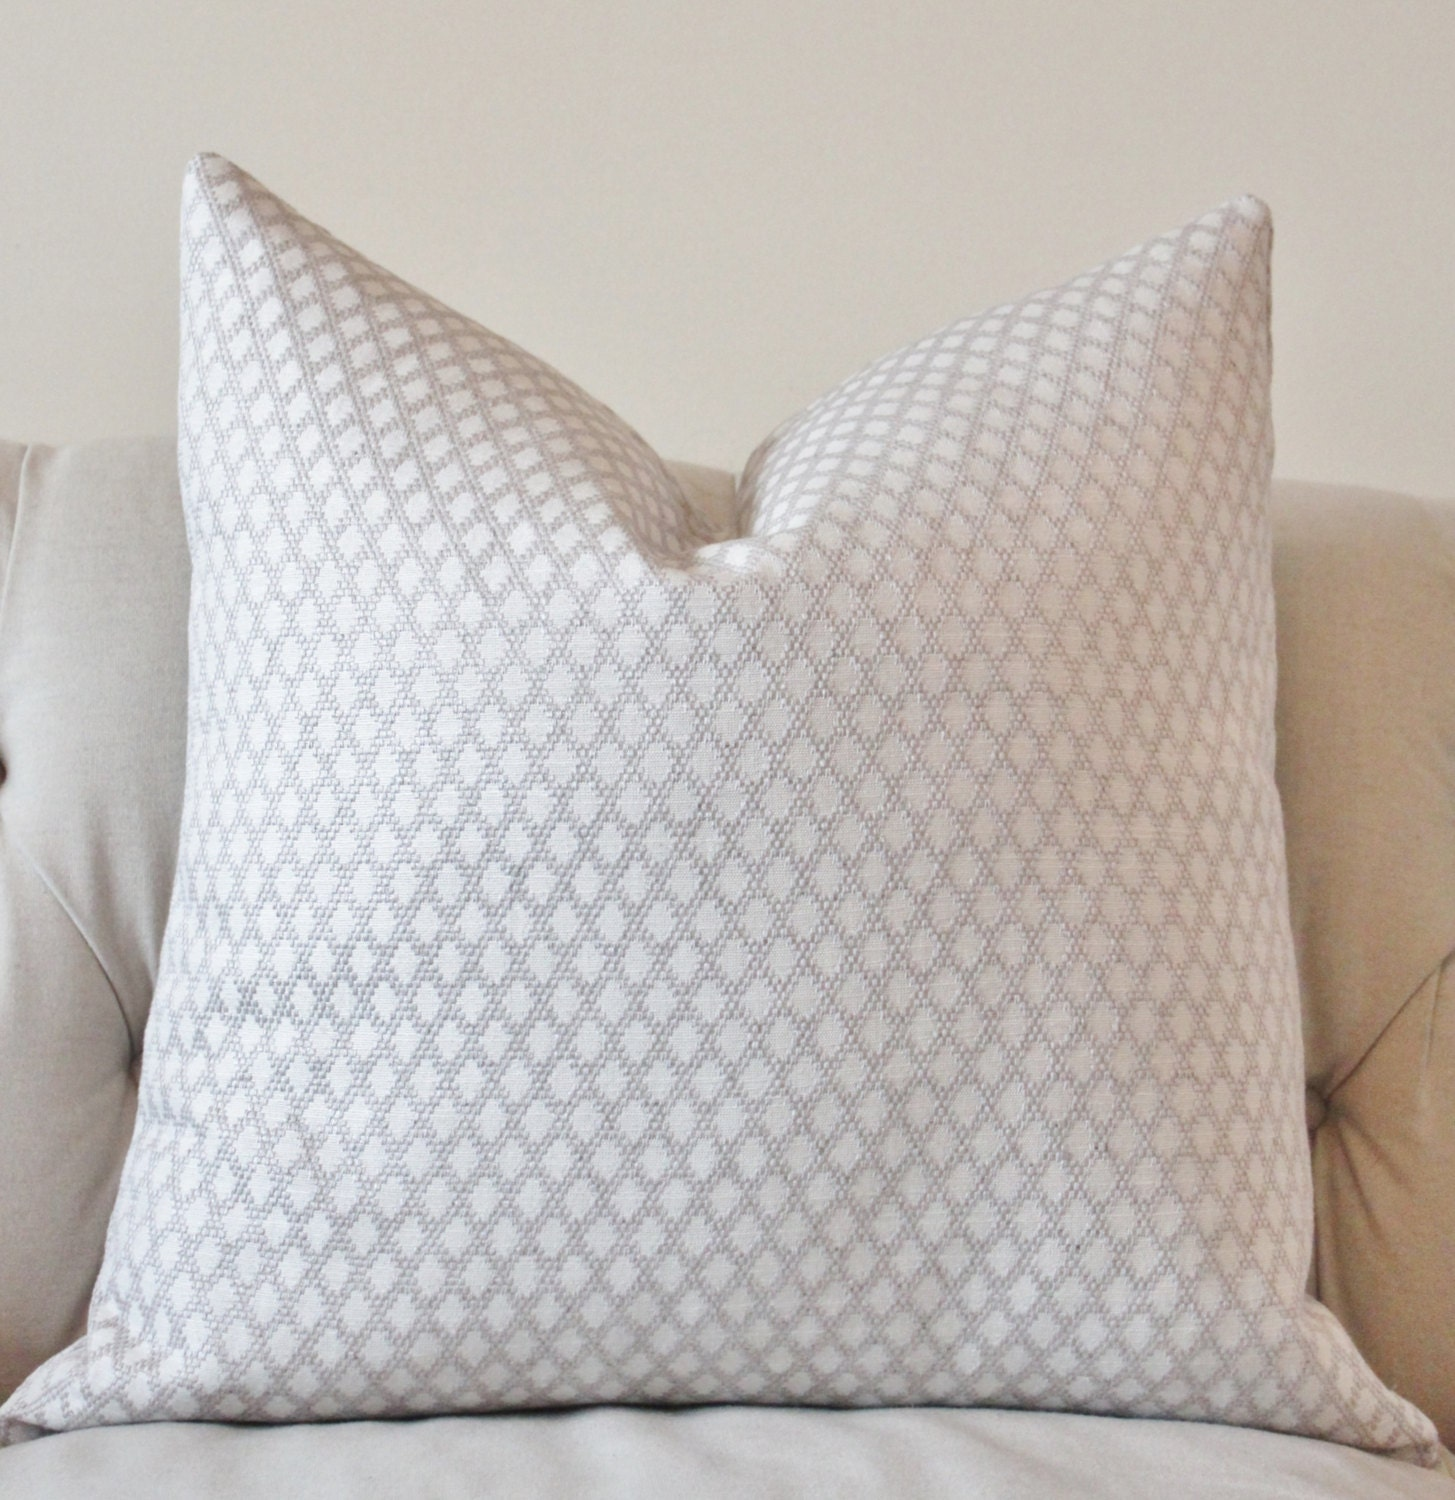 Gray Throw Pillows For Bed : Light Gray and White Pillow Silver Grey Woven Geometric